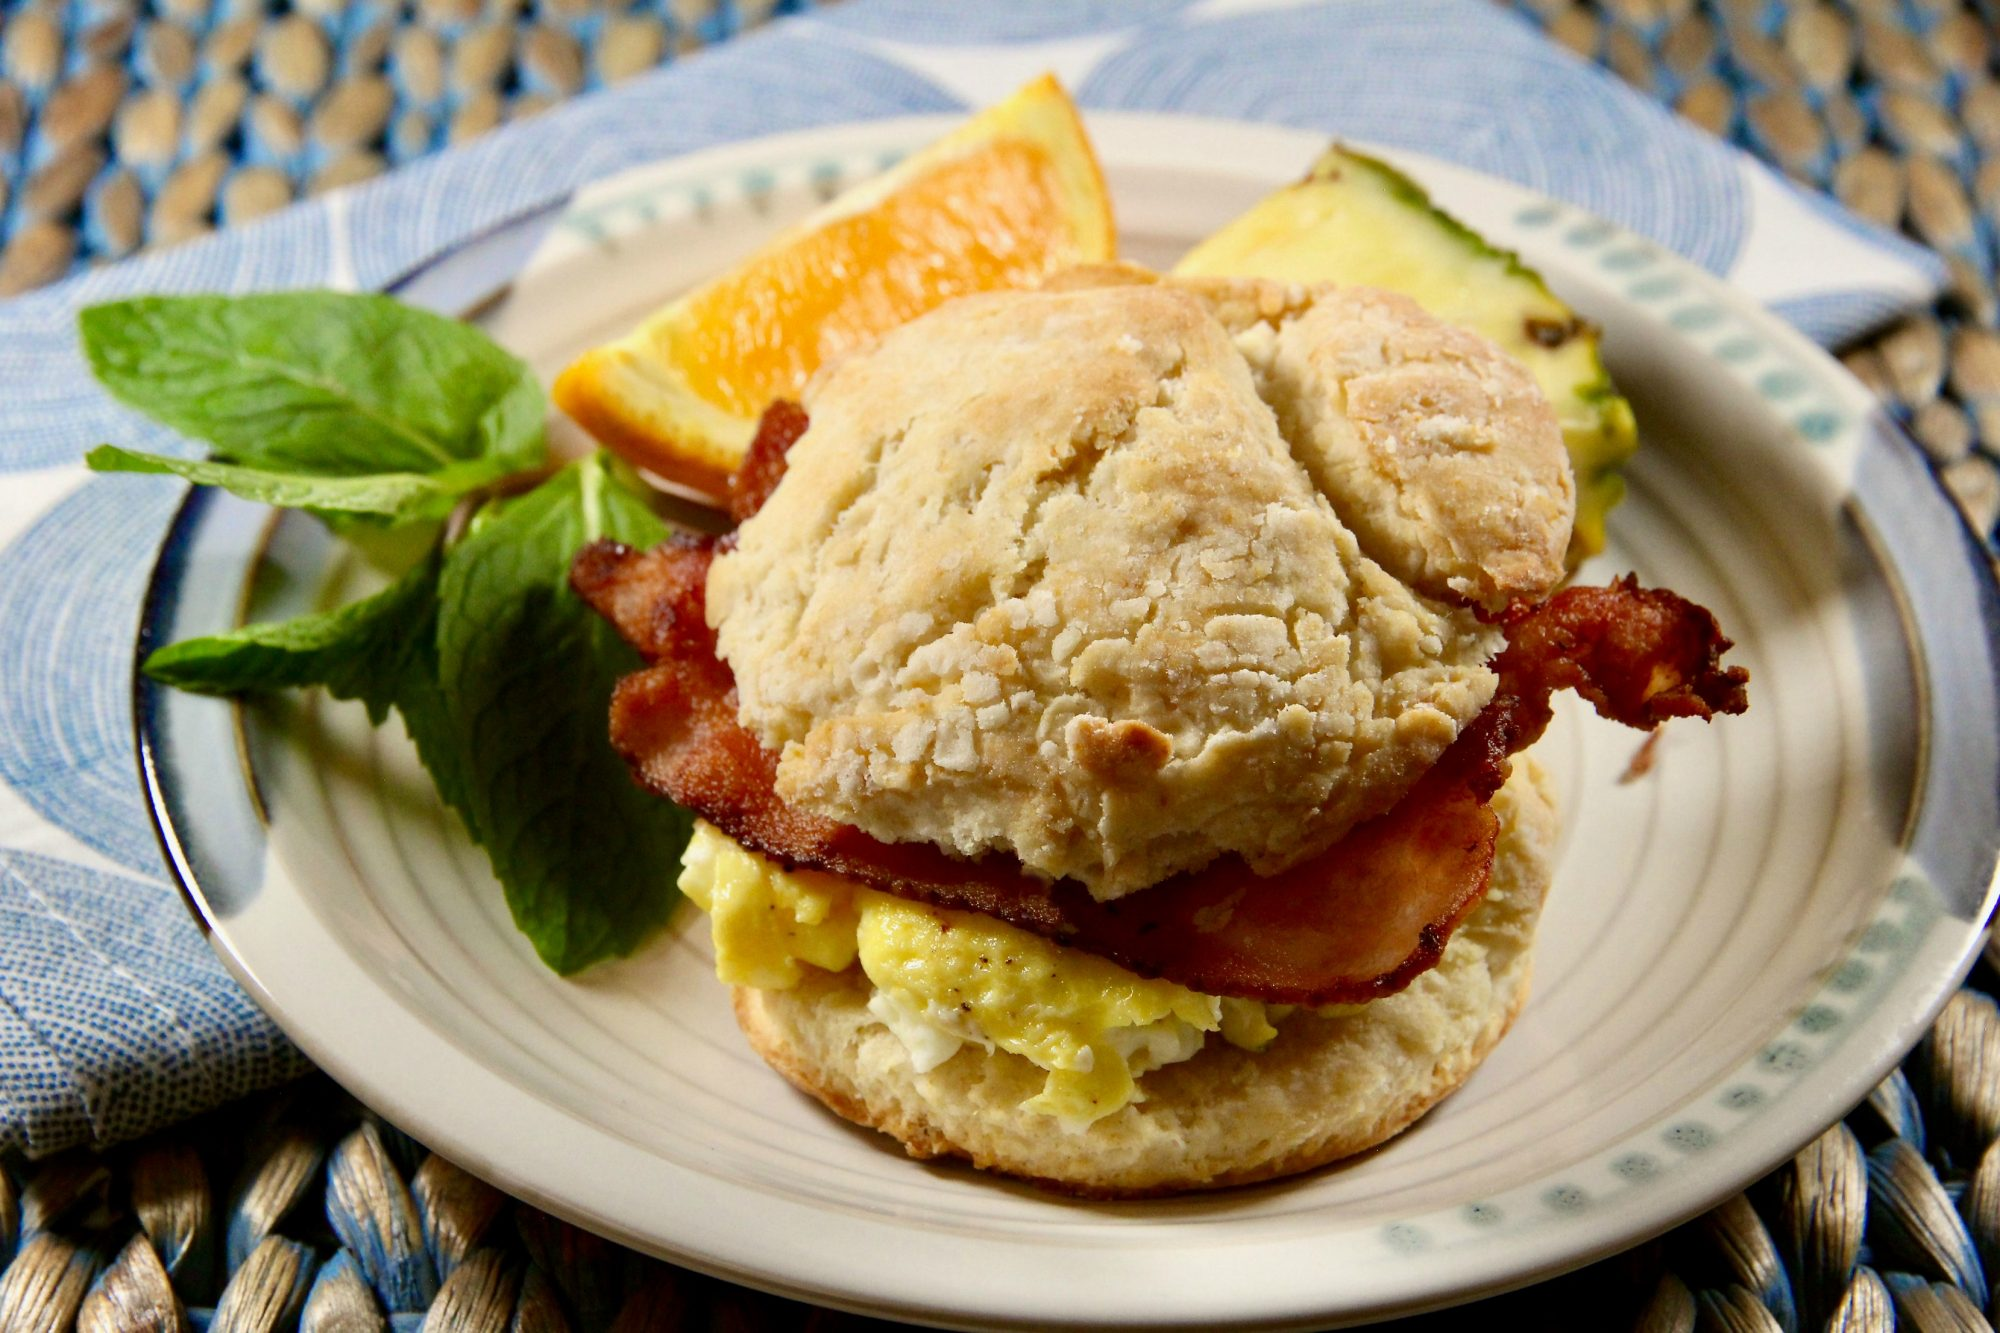 a Bacon, Egg, and Cheese Buttermilk Biscuit Breakfast Sandwich on a white plate with an orange wedge